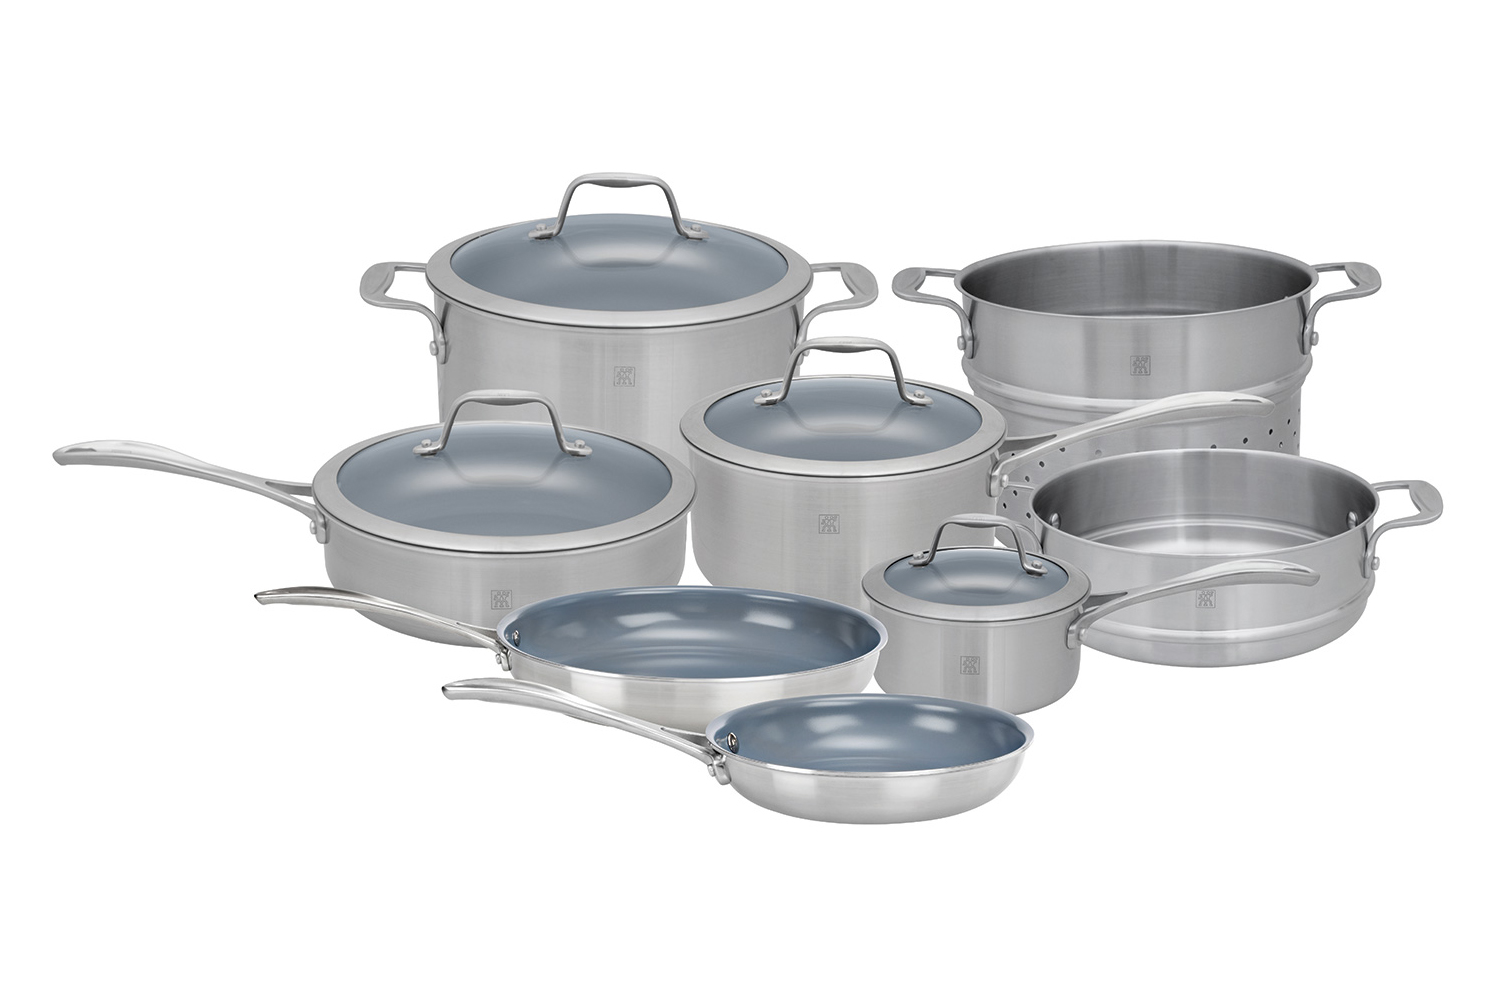 Zwilling J.A. Henckels Spirit 12 Piece Cookware Set - Ceramic Nonstick Coating